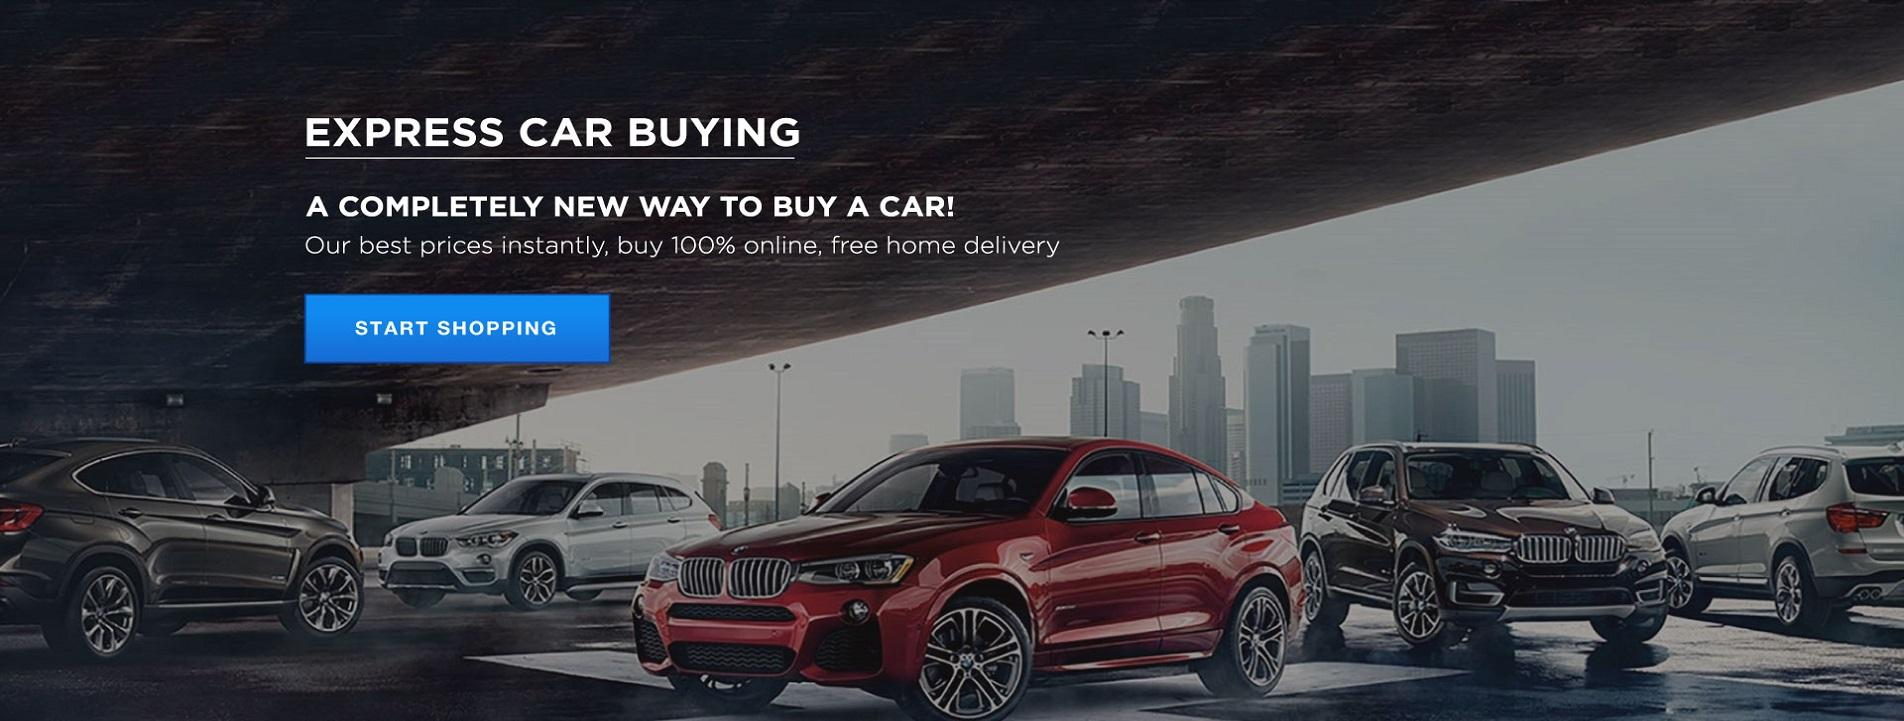 BMW Dealer San Francisco  Bay Area BMW Dealer  BMW of San Francisco